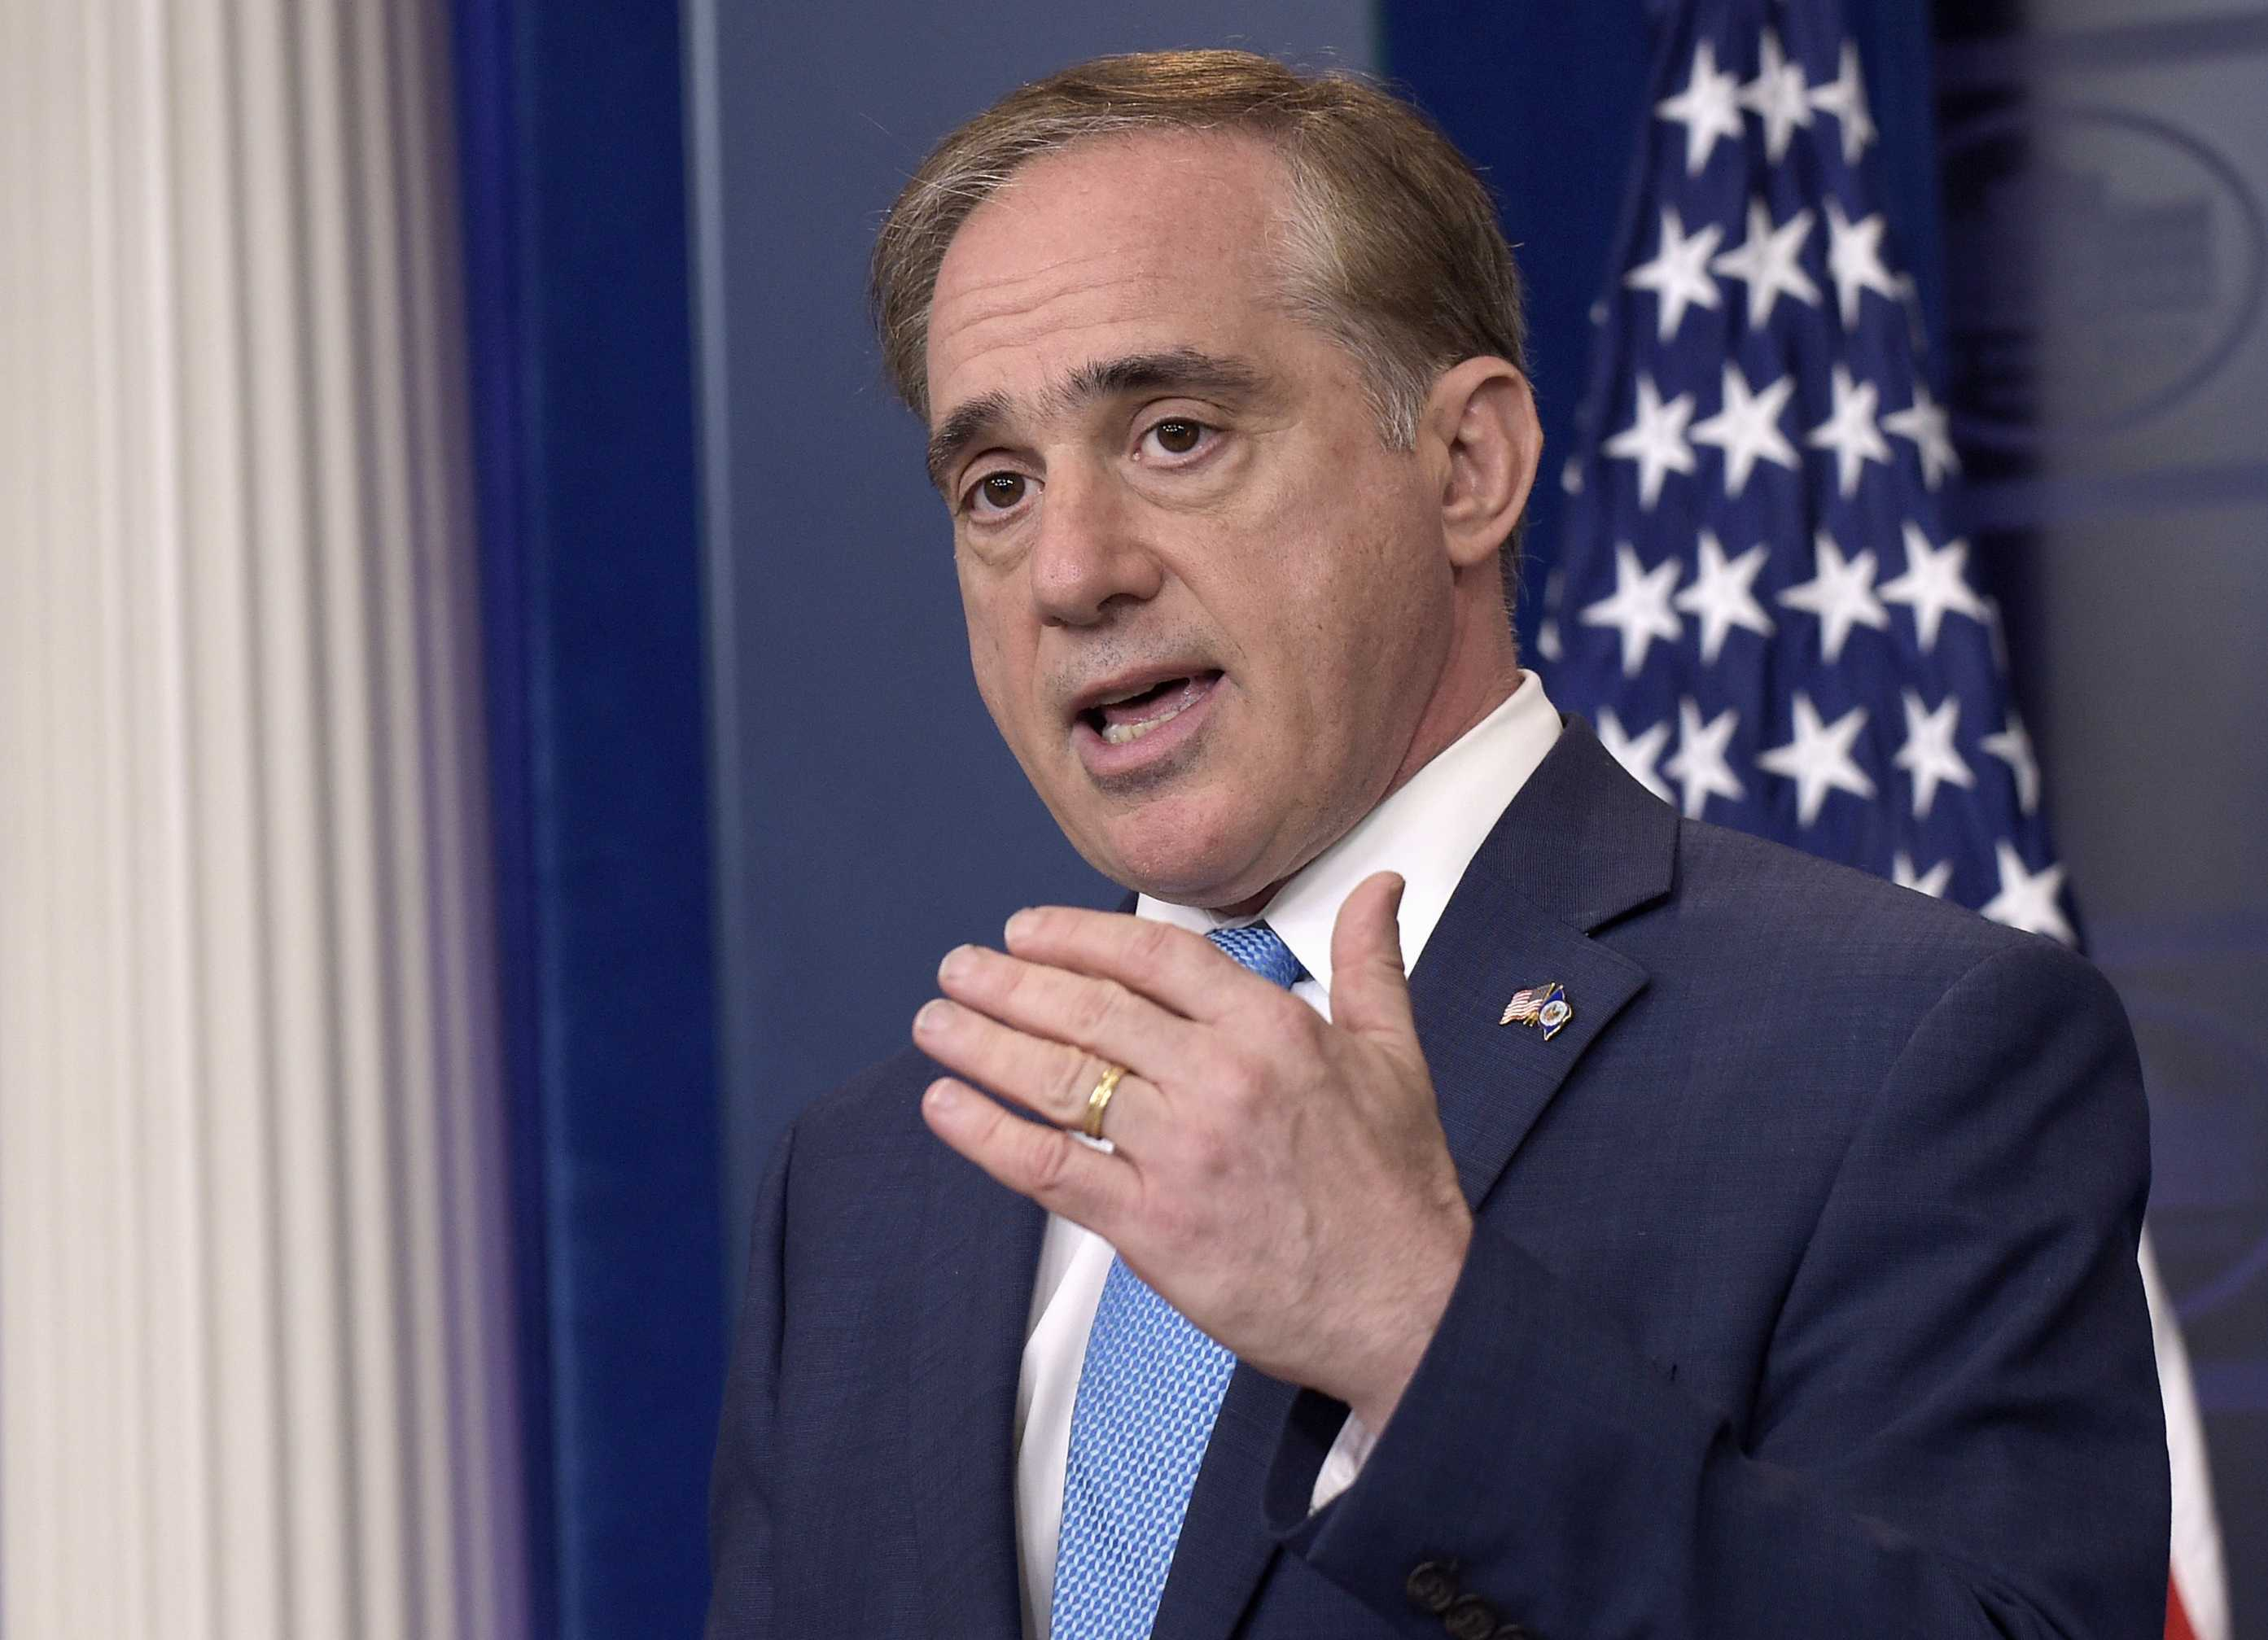 VA under fire for doctored emails, improper gifts and misused resources